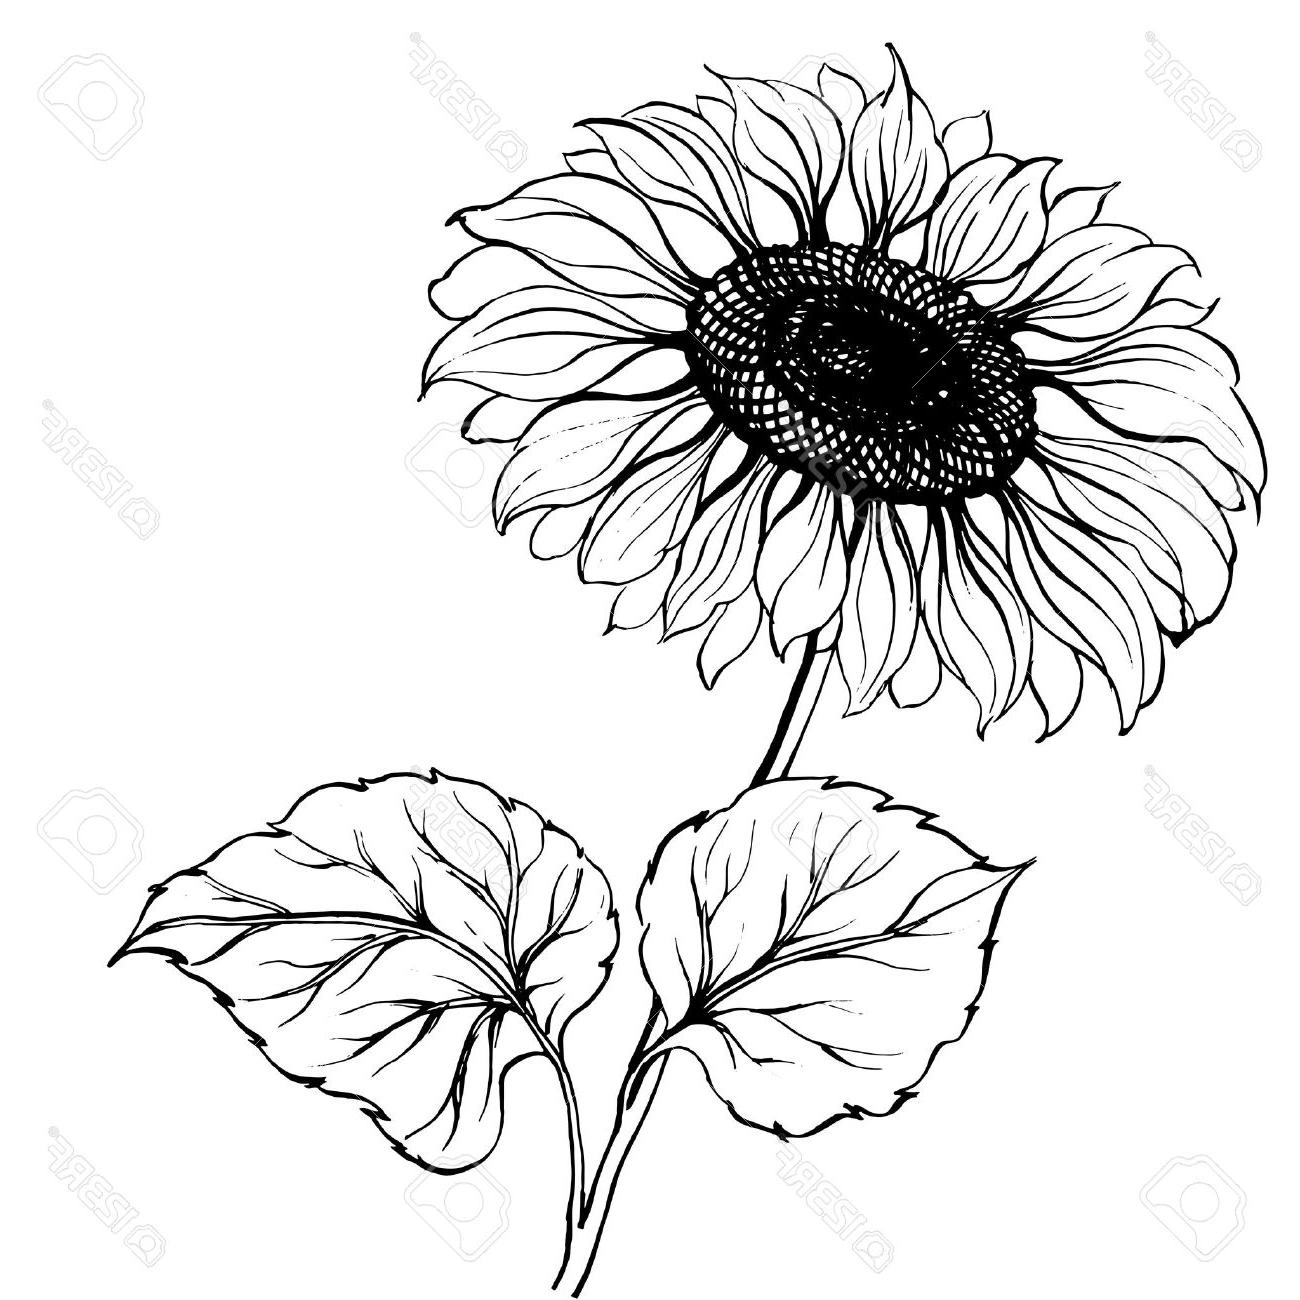 Sunflower Line Drawing : Sunflowers drawing at getdrawings free for personal